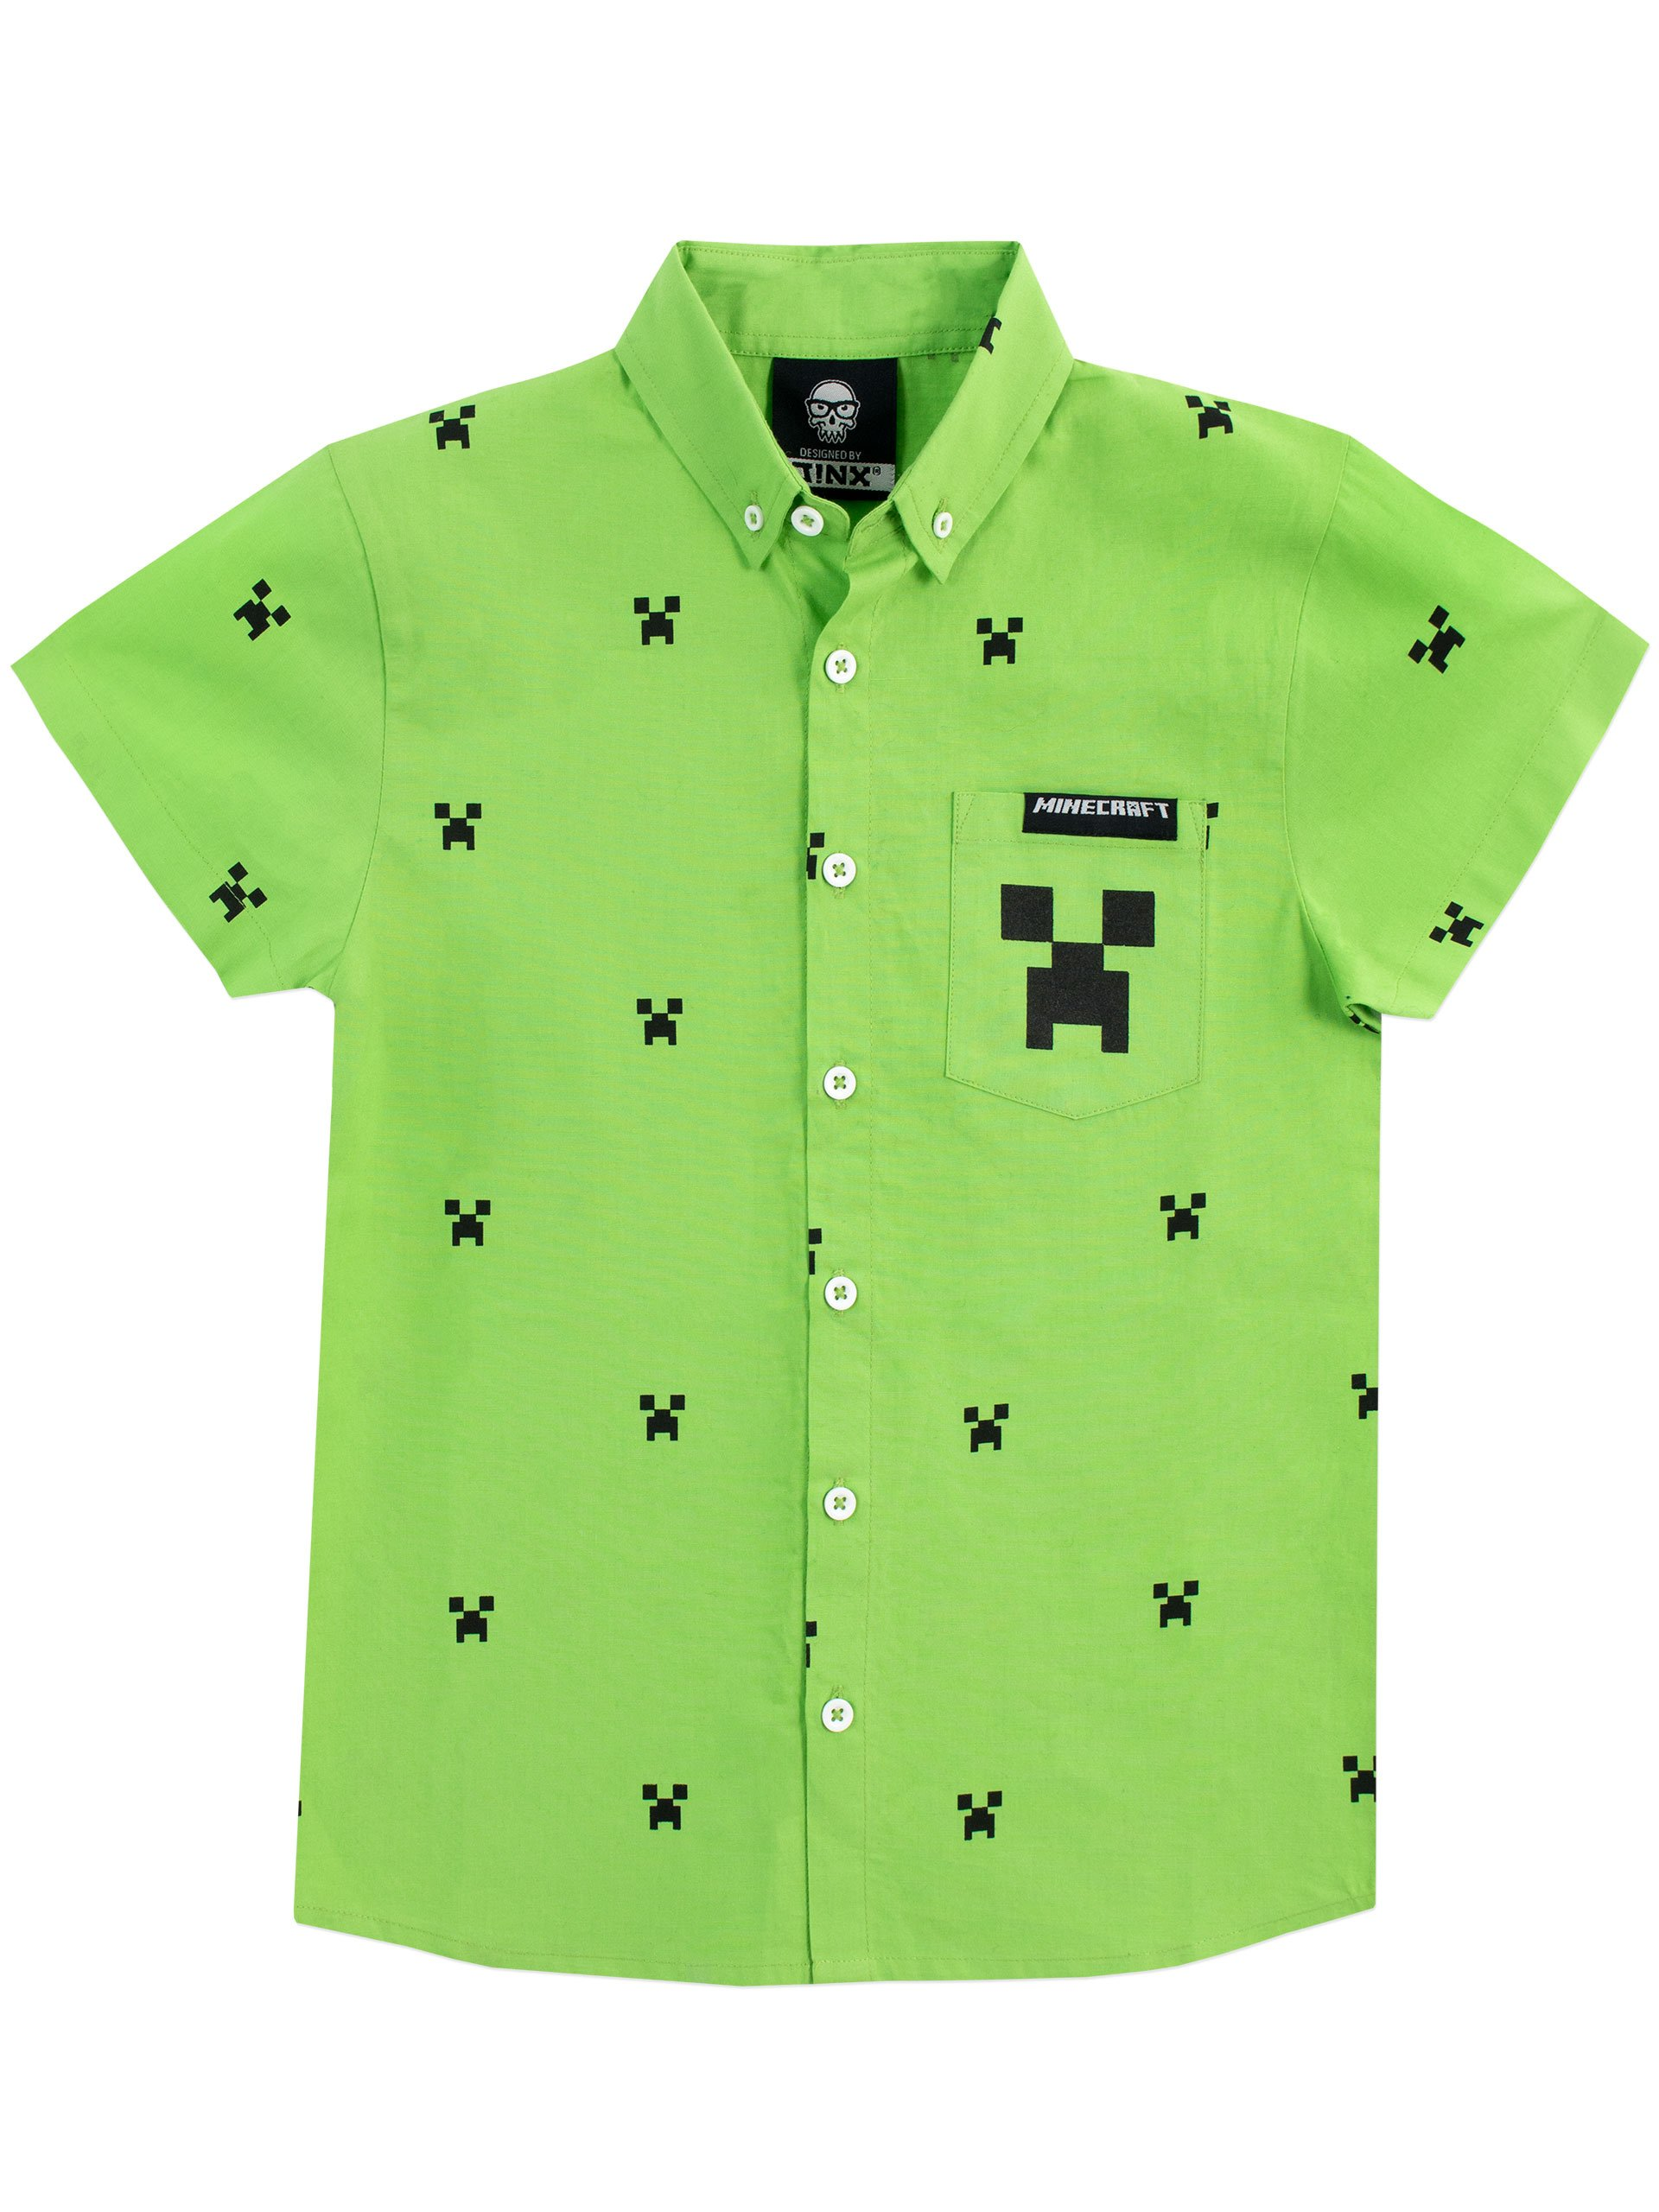 Minecraft Boys' Creeper Button Down Shirt Size 6 Green